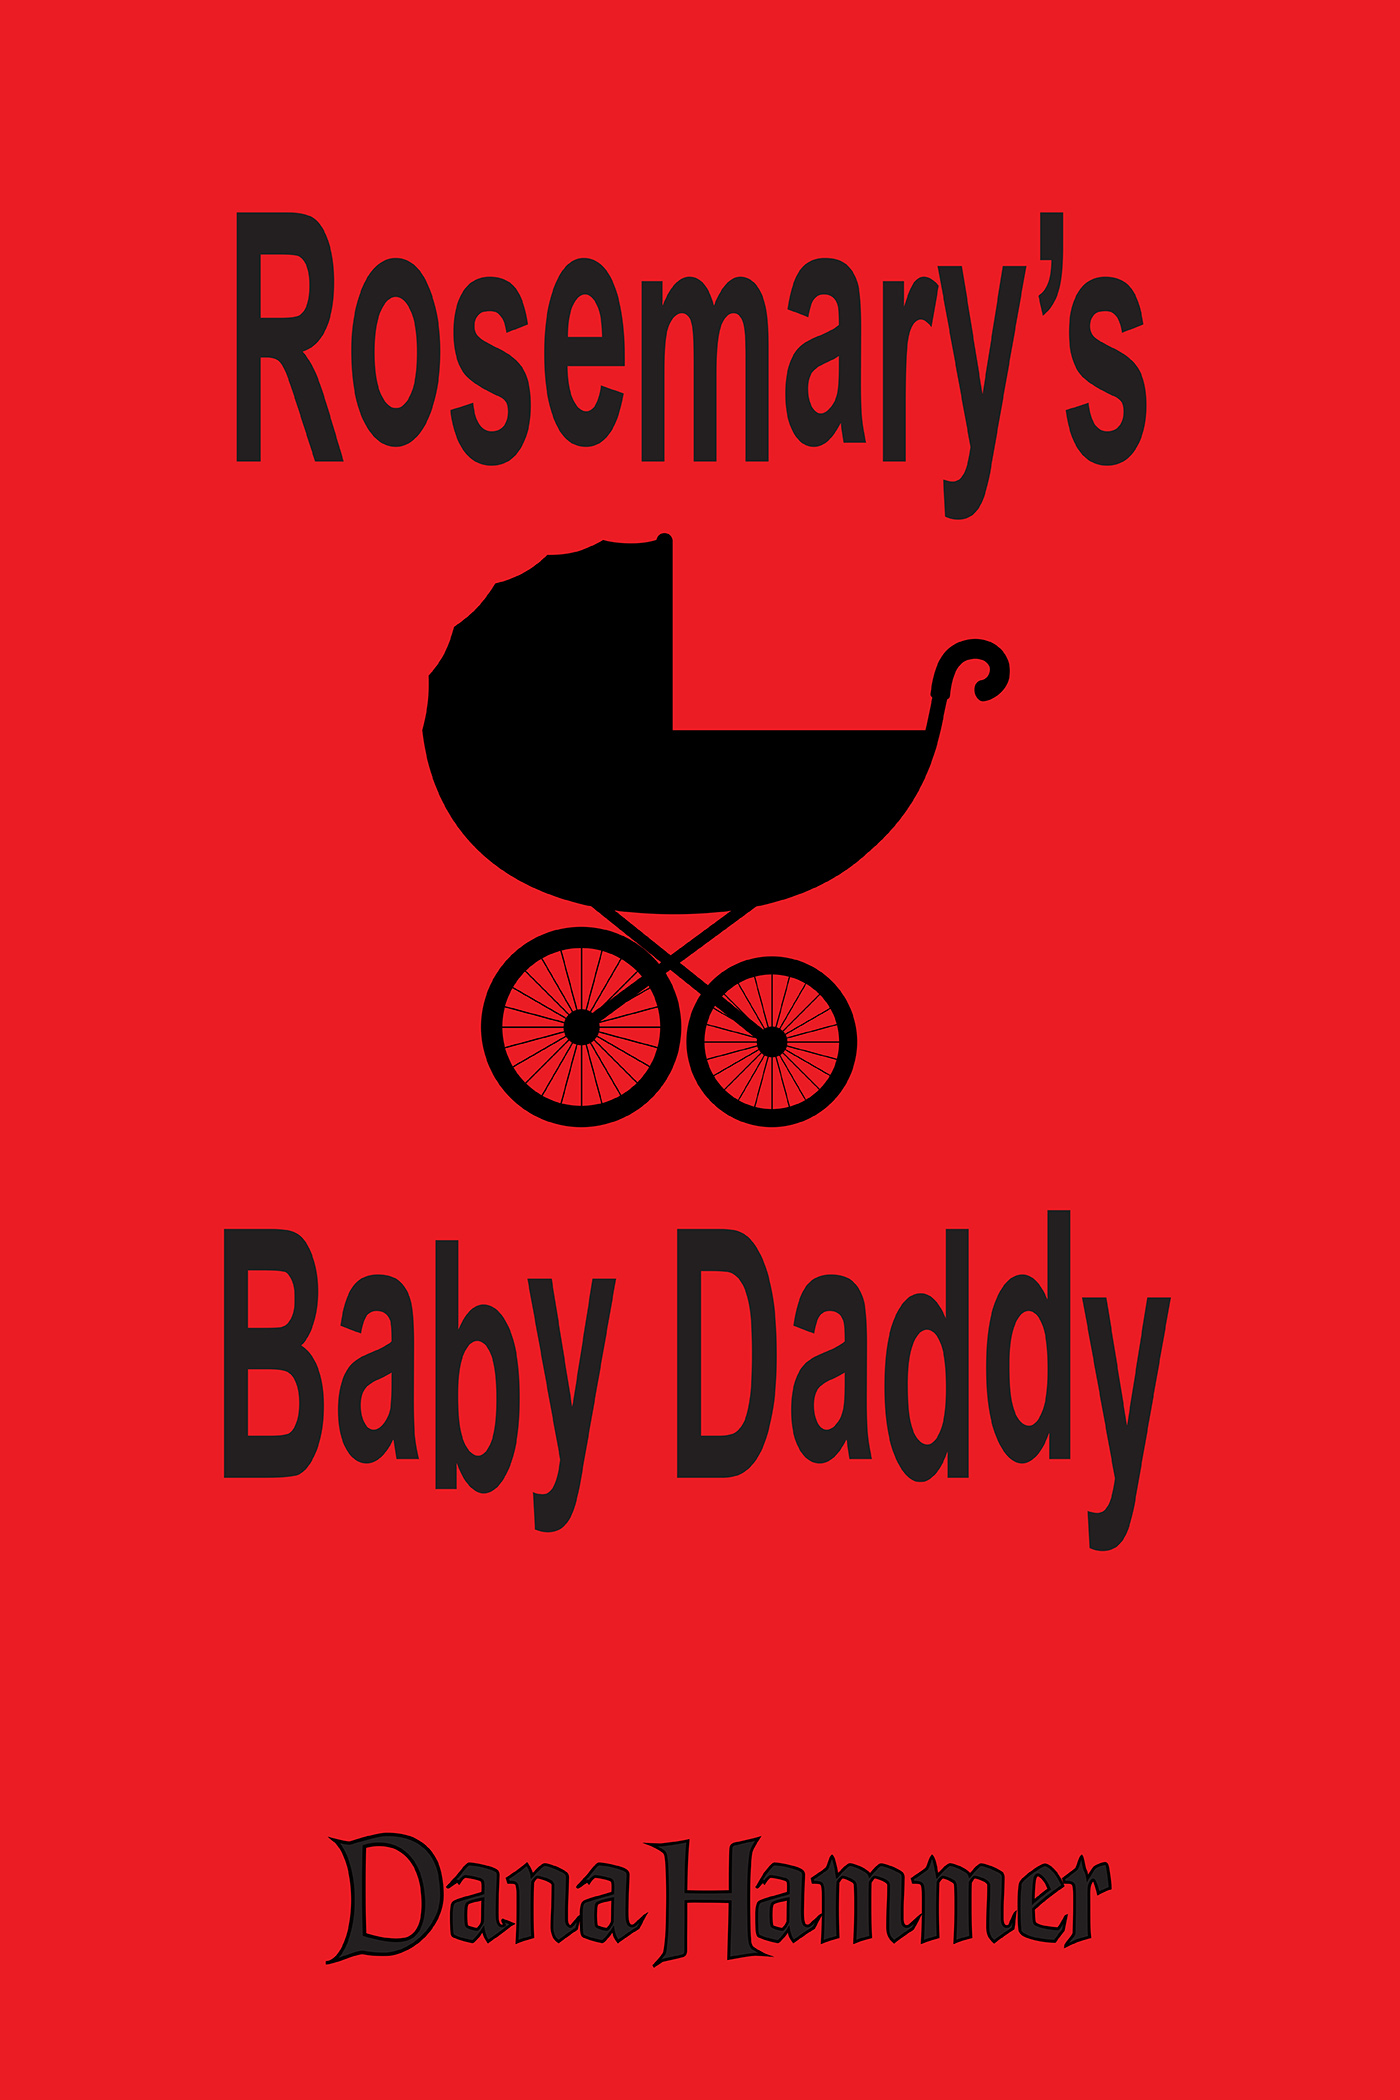 Rosemary's Baby Daddy